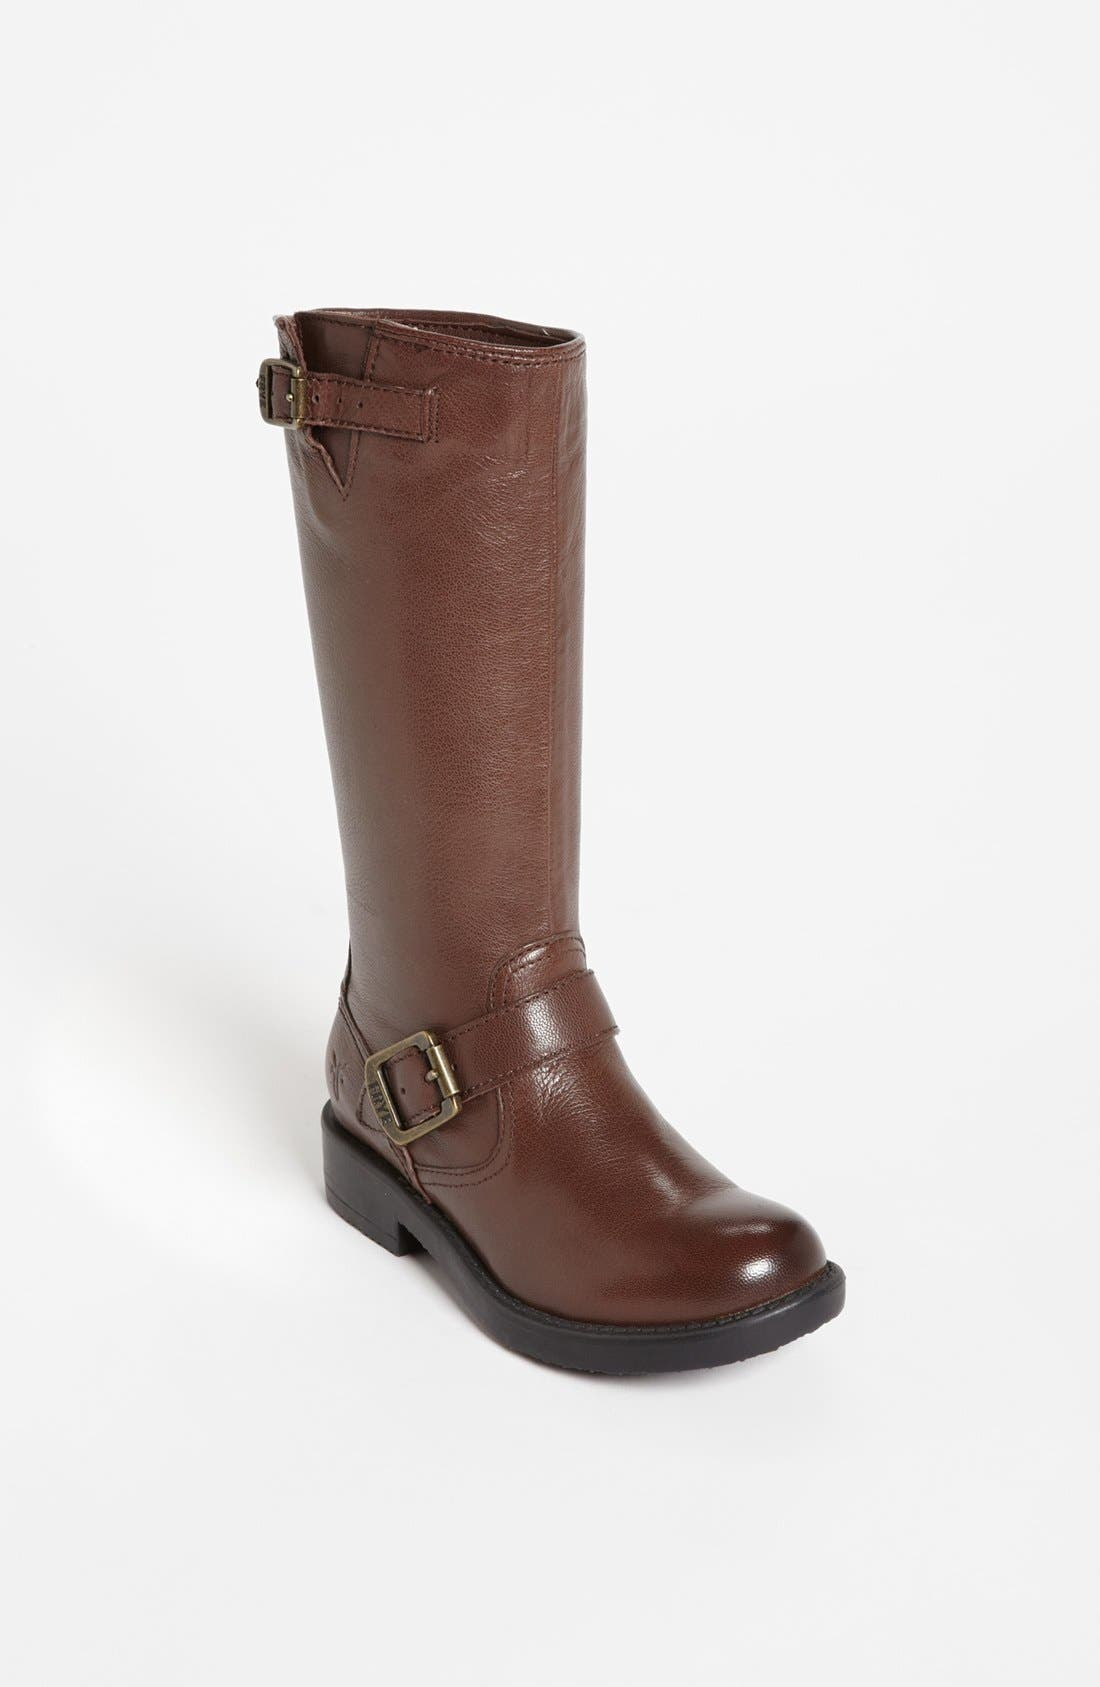 Alternate Image 1 Selected - Frye 'Veronica' Slouch Boot (Little Kid & Big Kid) (Online Only)